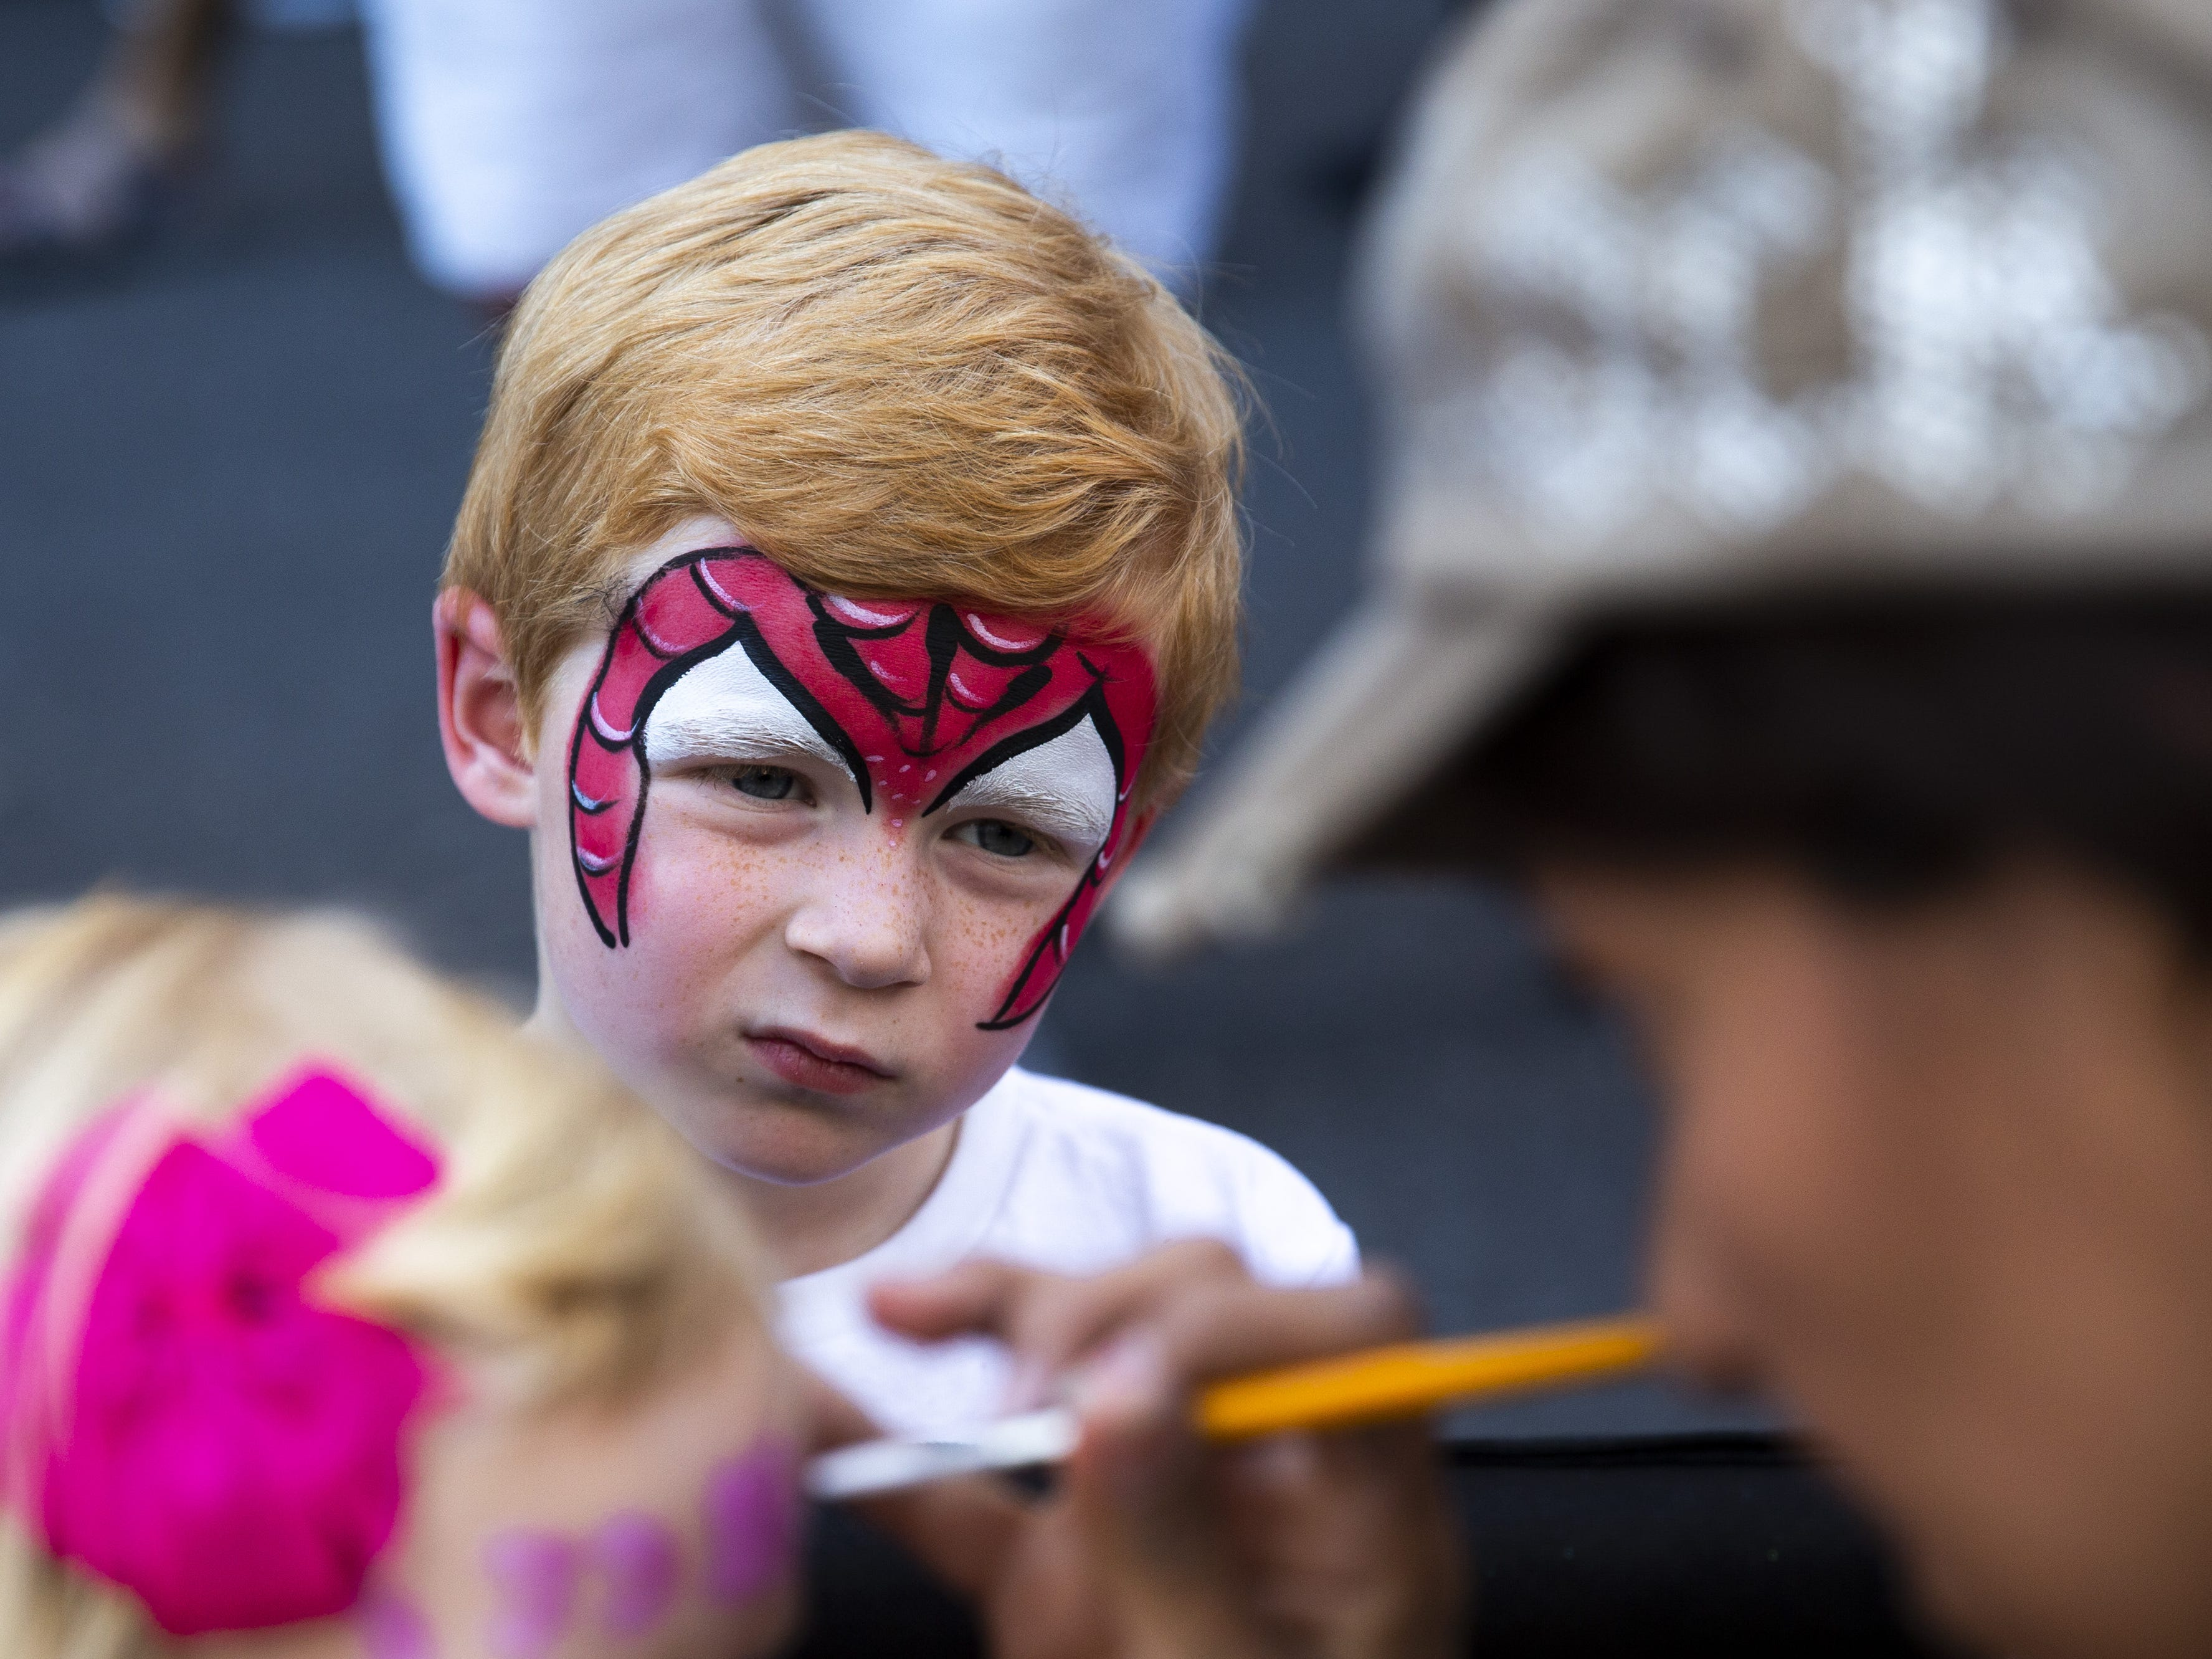 Quinn DeMeritt, 5, wears a Spiderman shirt and has Spiderman face paint in the kids block, located between Fifth and Sixth Streets, during the Spring Tempe Festival of the Arts on Saturday, March 30, 2019.